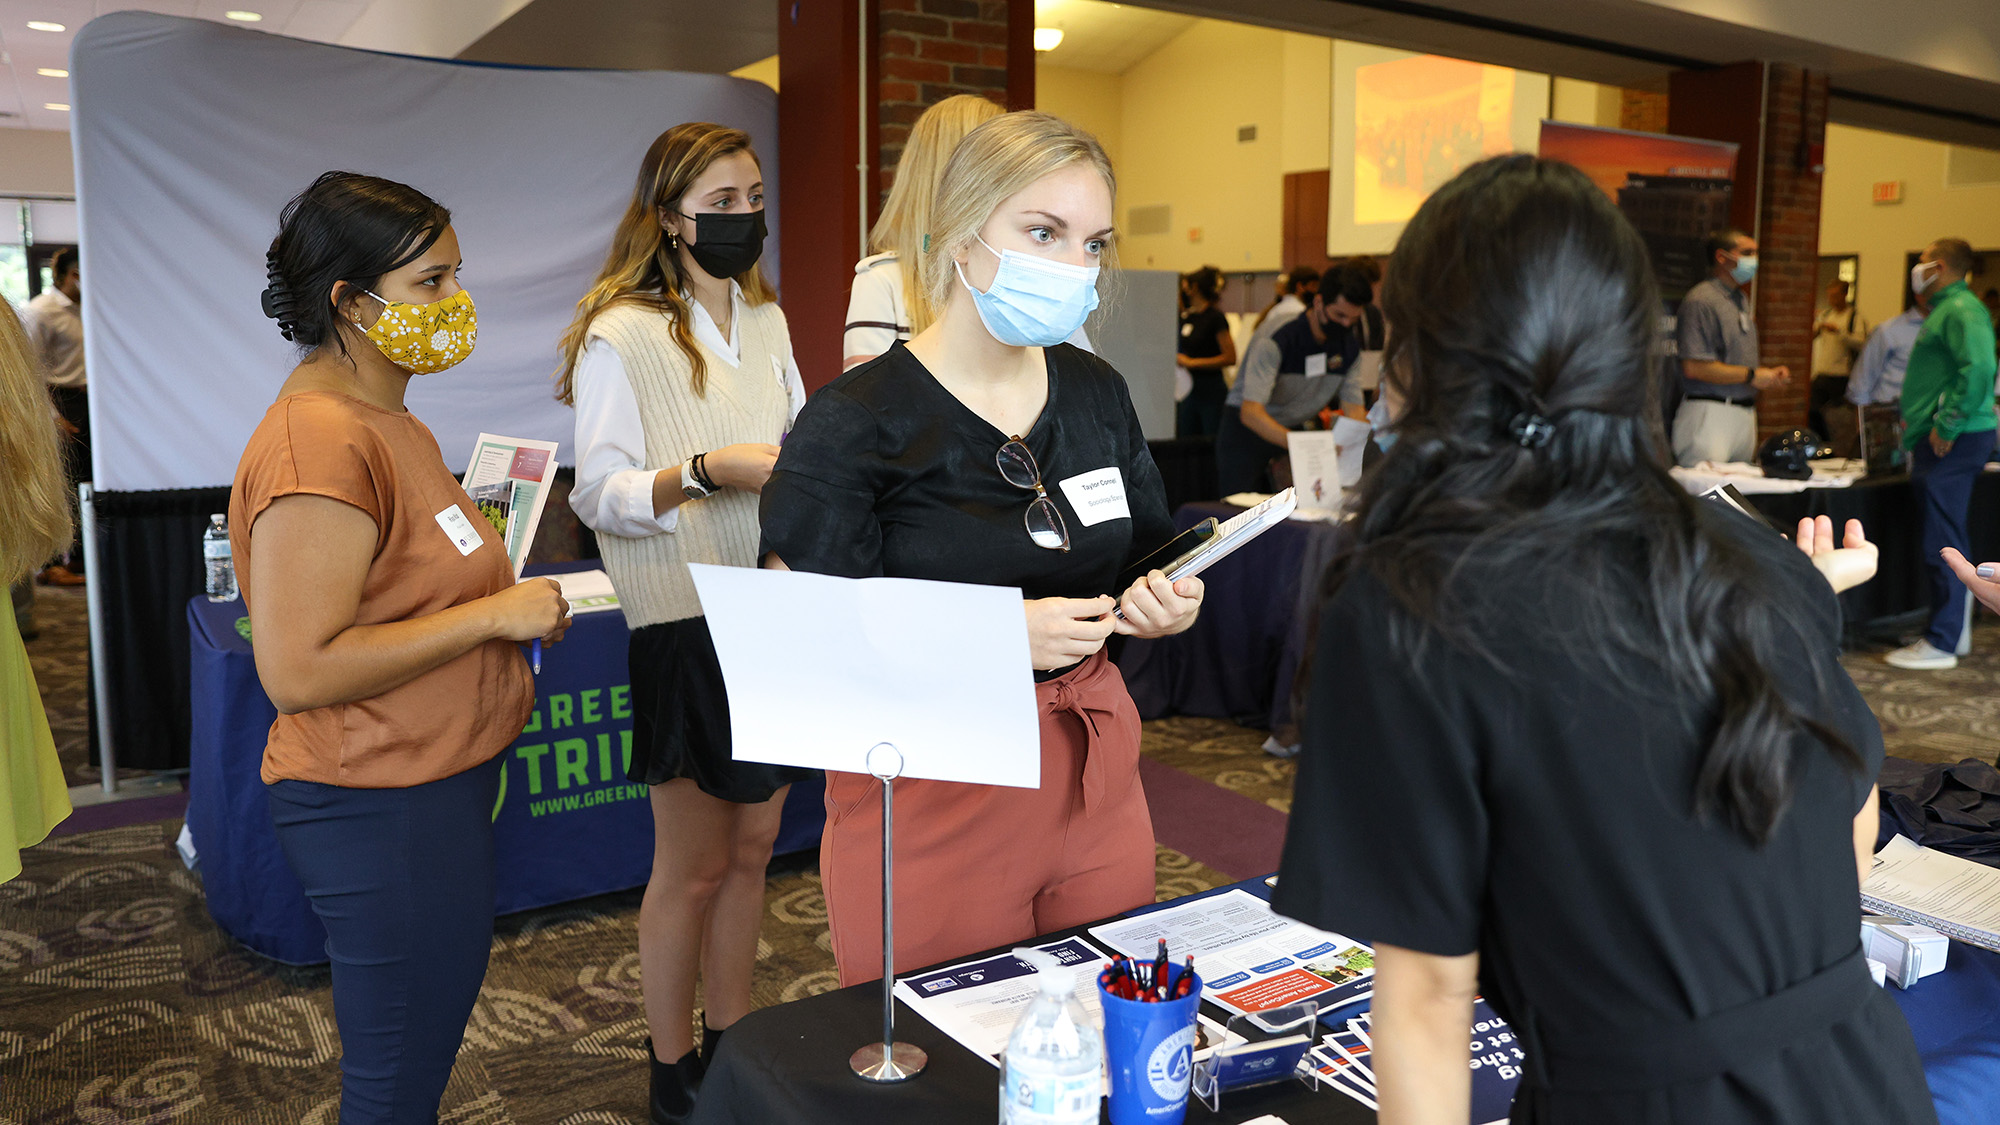 Opportunity Fair 2021 took place in the Watkins Room of the Trone Student Center.